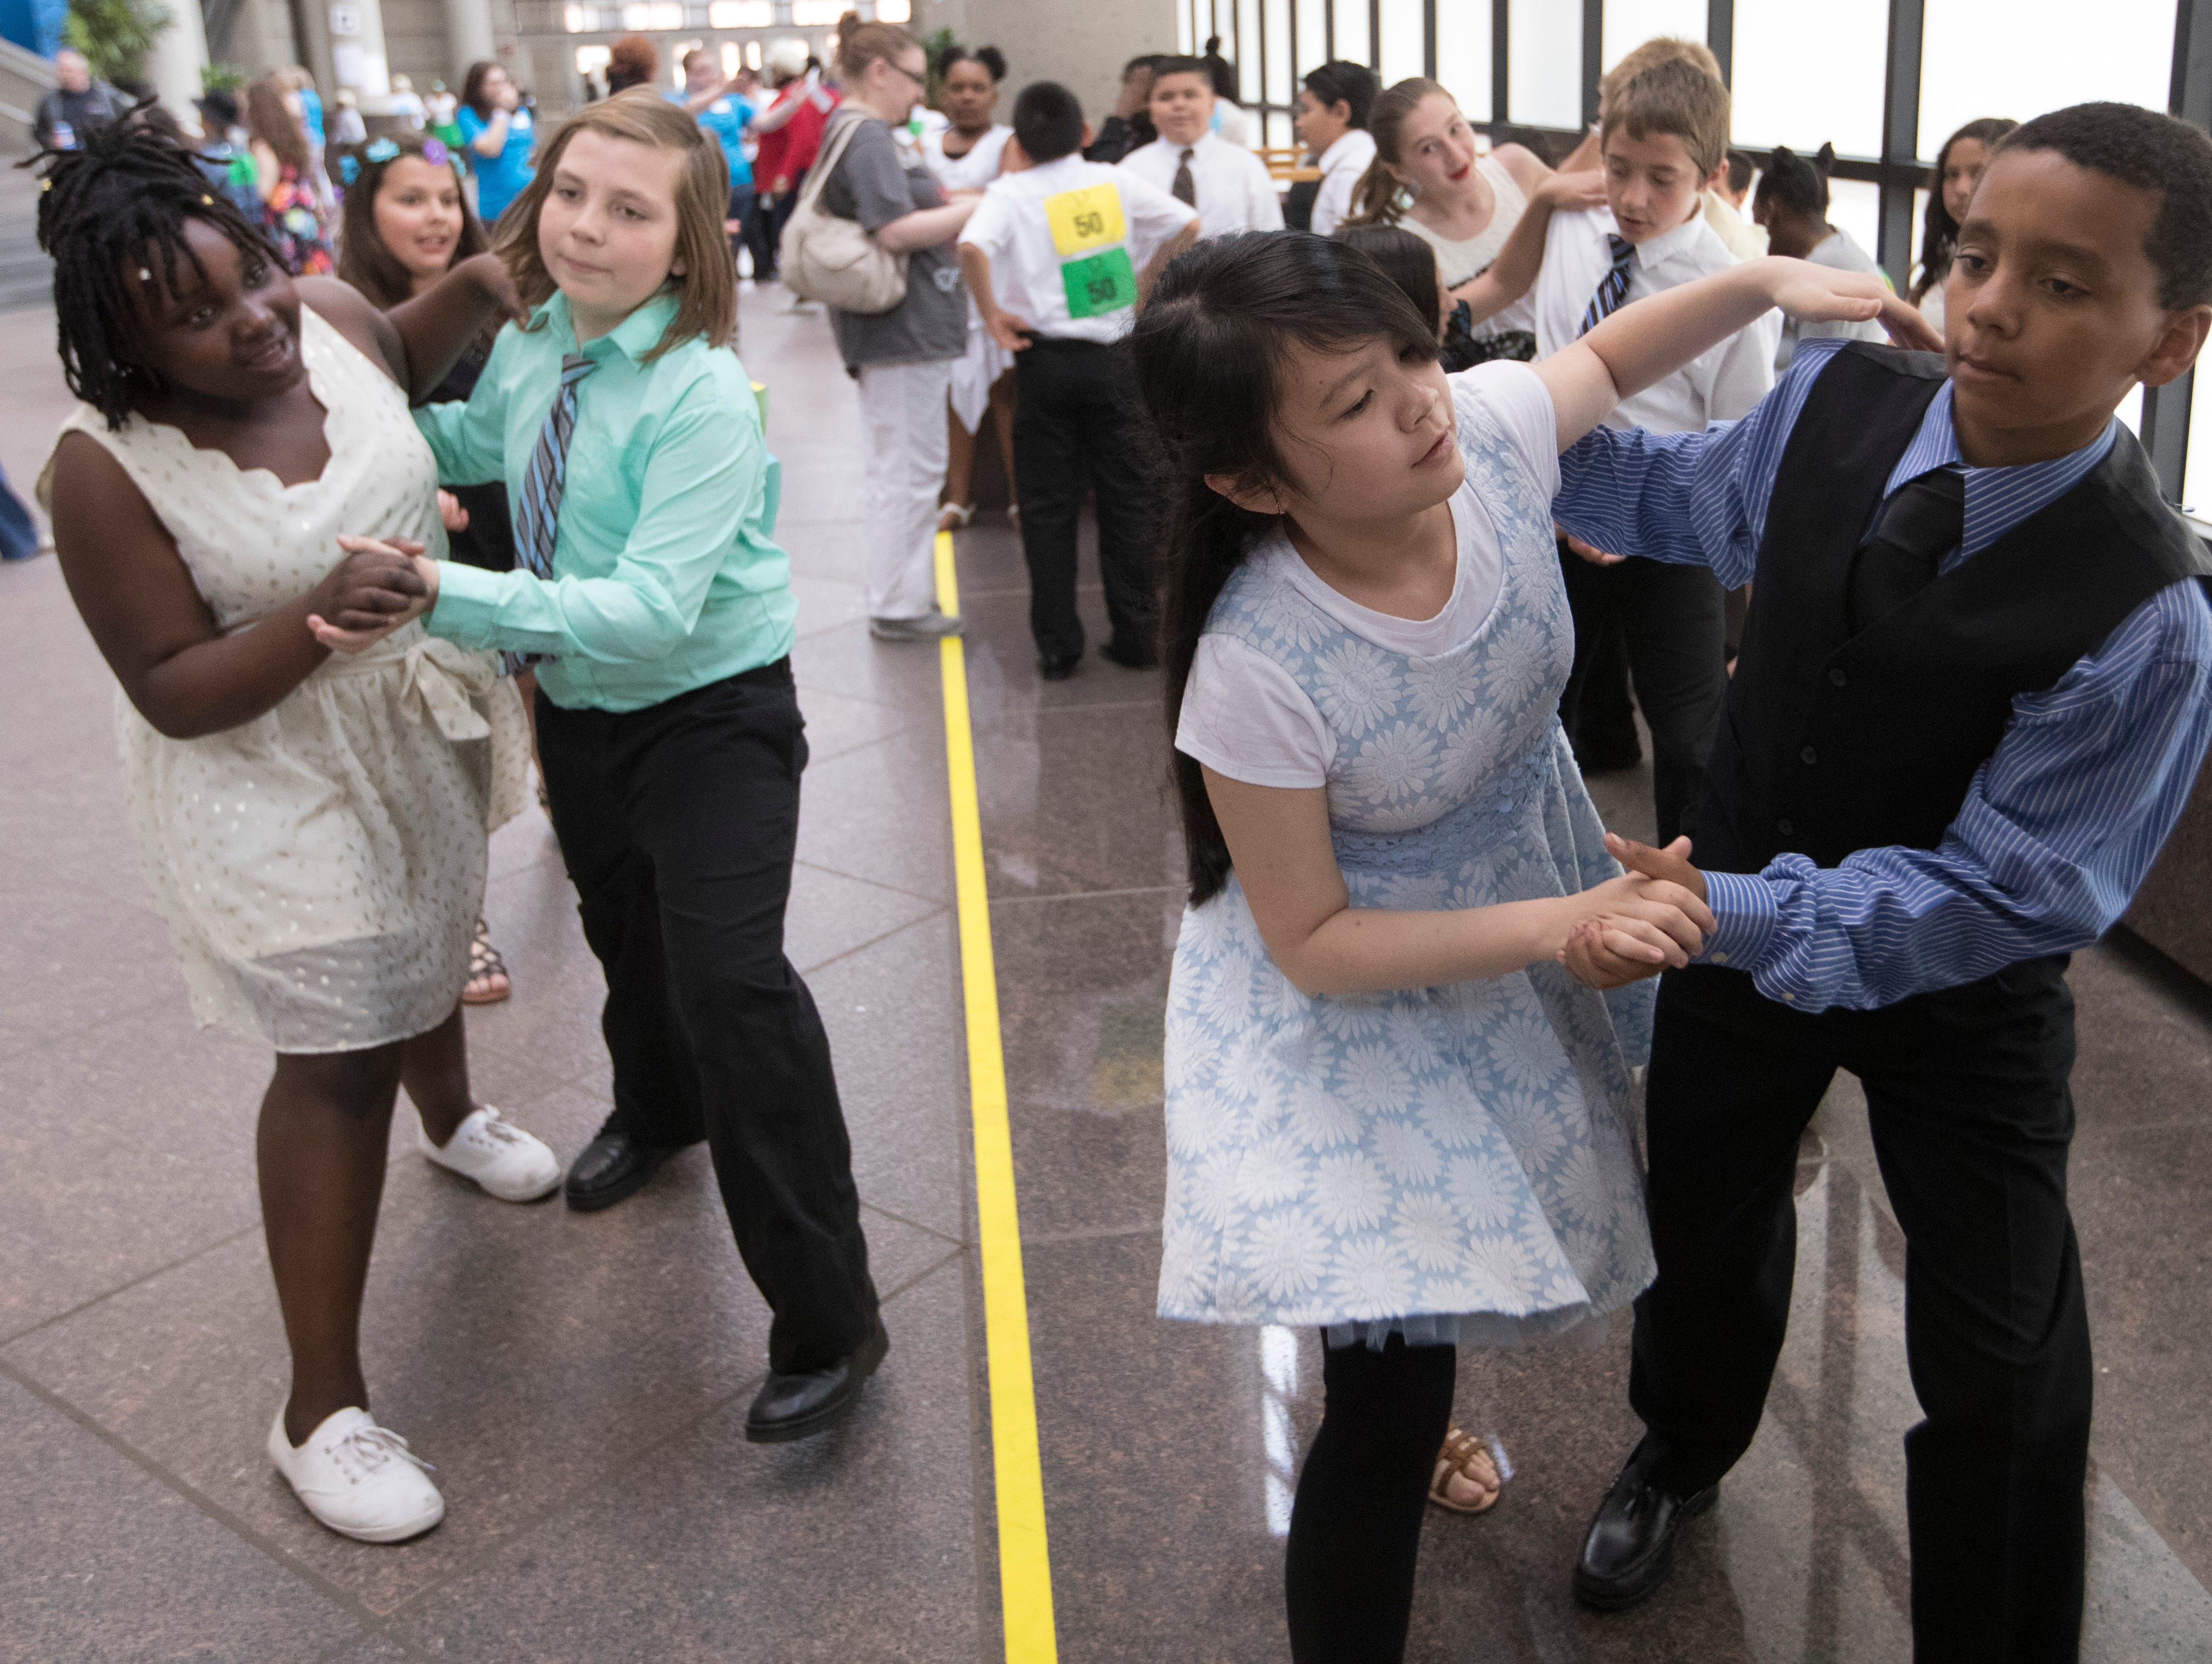 2018: Students from Alcott Elementary School rehearse in the lobby during the 12th annual  Danceworks Mad Hot Ballroom and Tap Competition at the BMO Harris Bradley Center. More than 1,000 5th and 6th grade students from more than 50 Milwaukee area schools competed and showed off the salsa, tango and swing moves they've been working on since February.